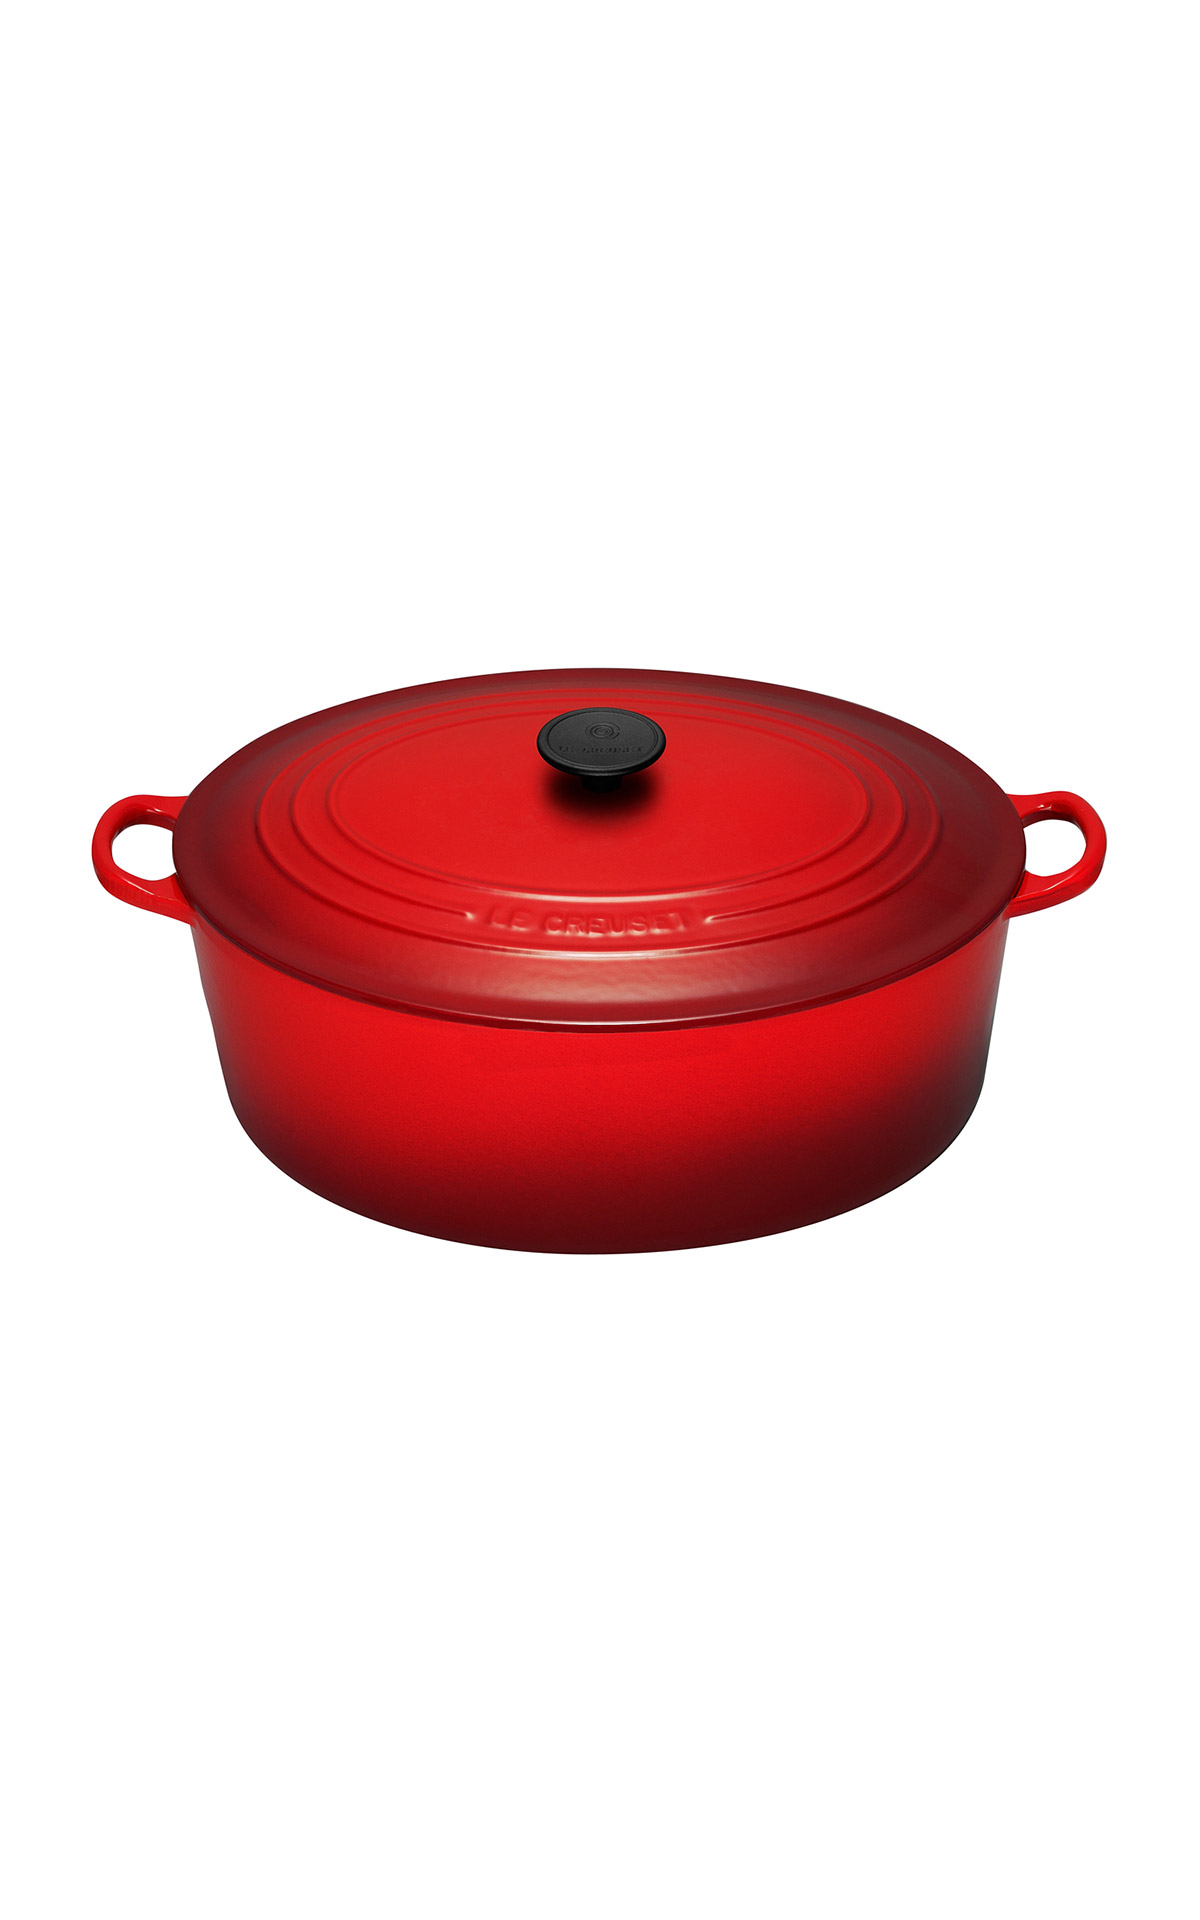 Red cocotte Le Creuset